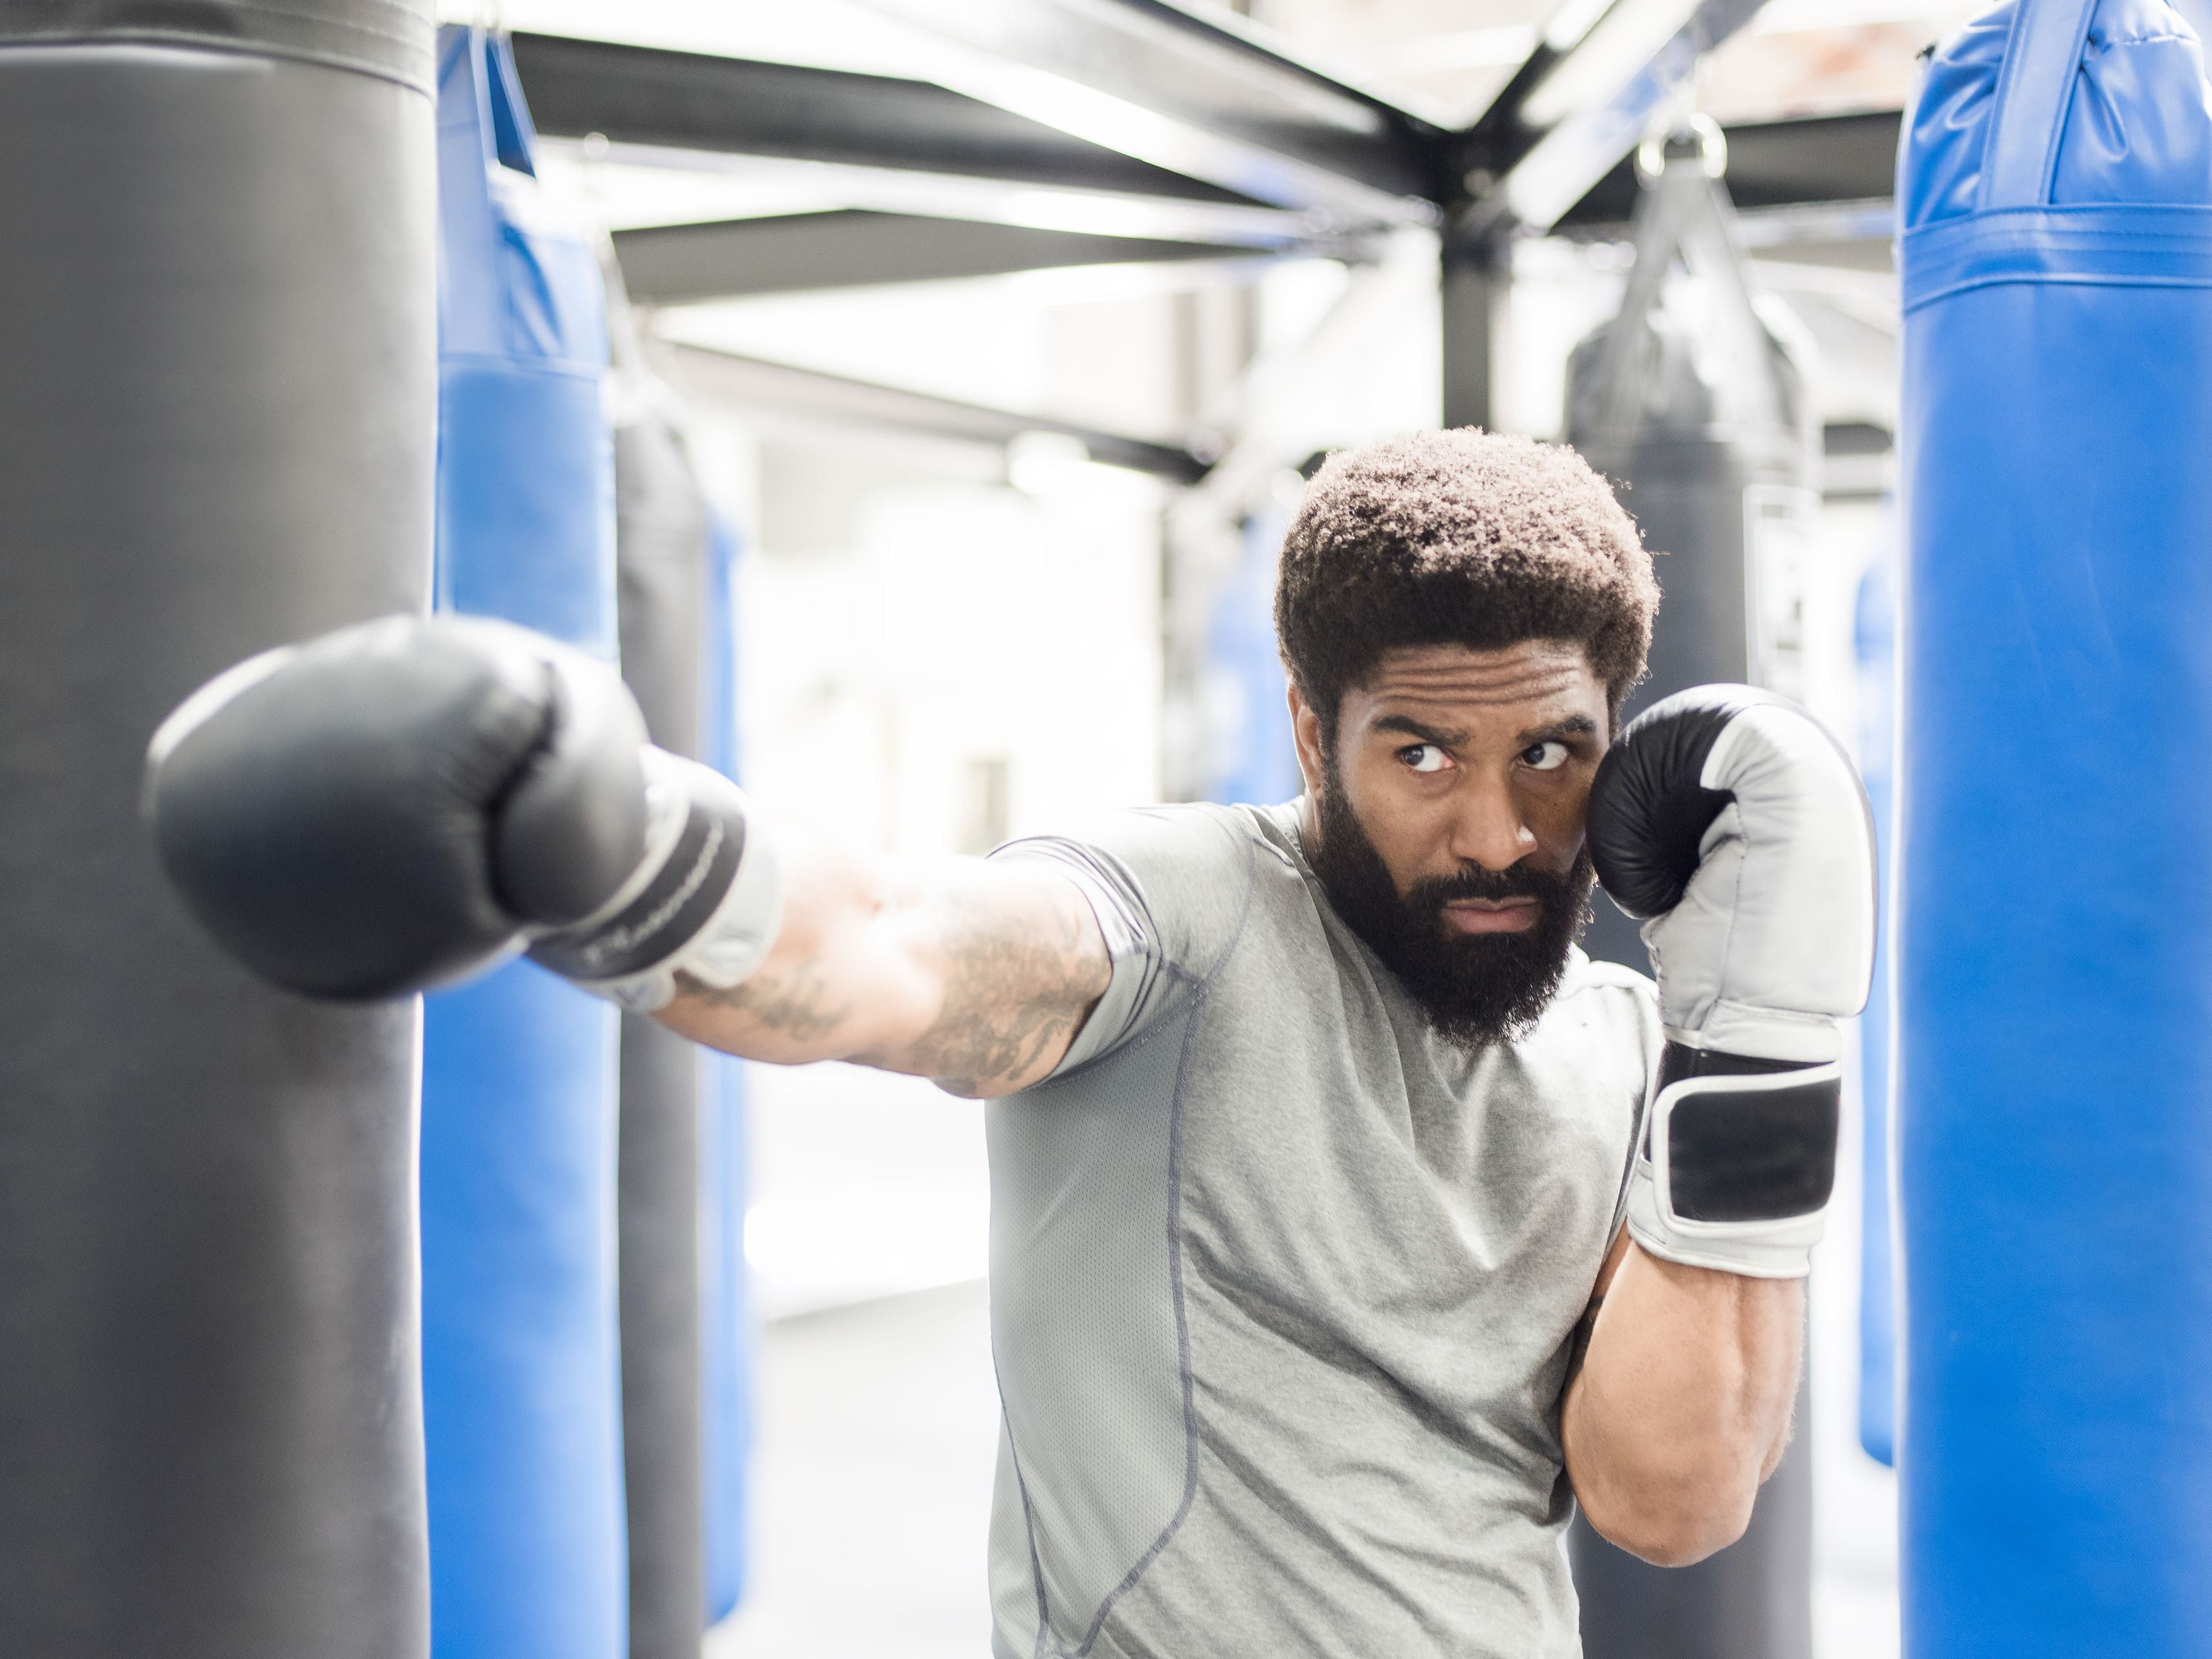 a52c30ed6d0 The 7 Best Punching Bags of 2019